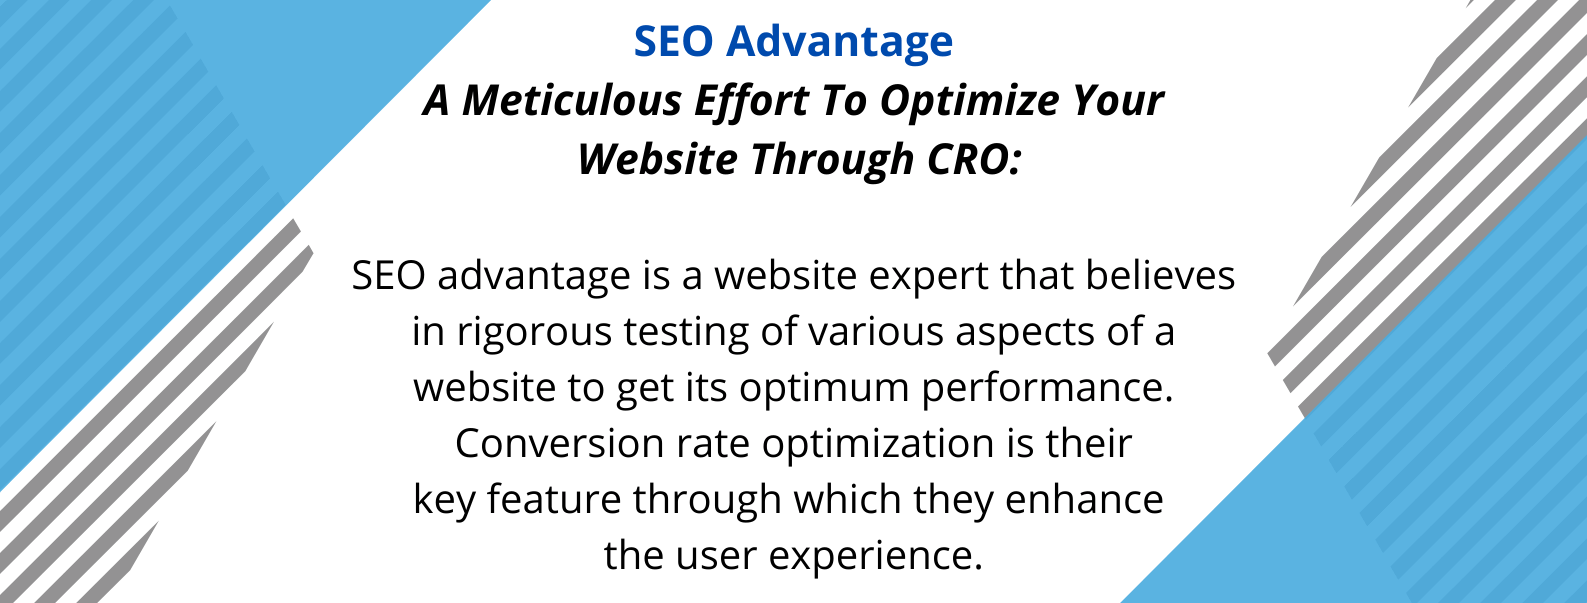 SEO Advantage - one of the best SEO agencies in Australia - with its unique selling propositions